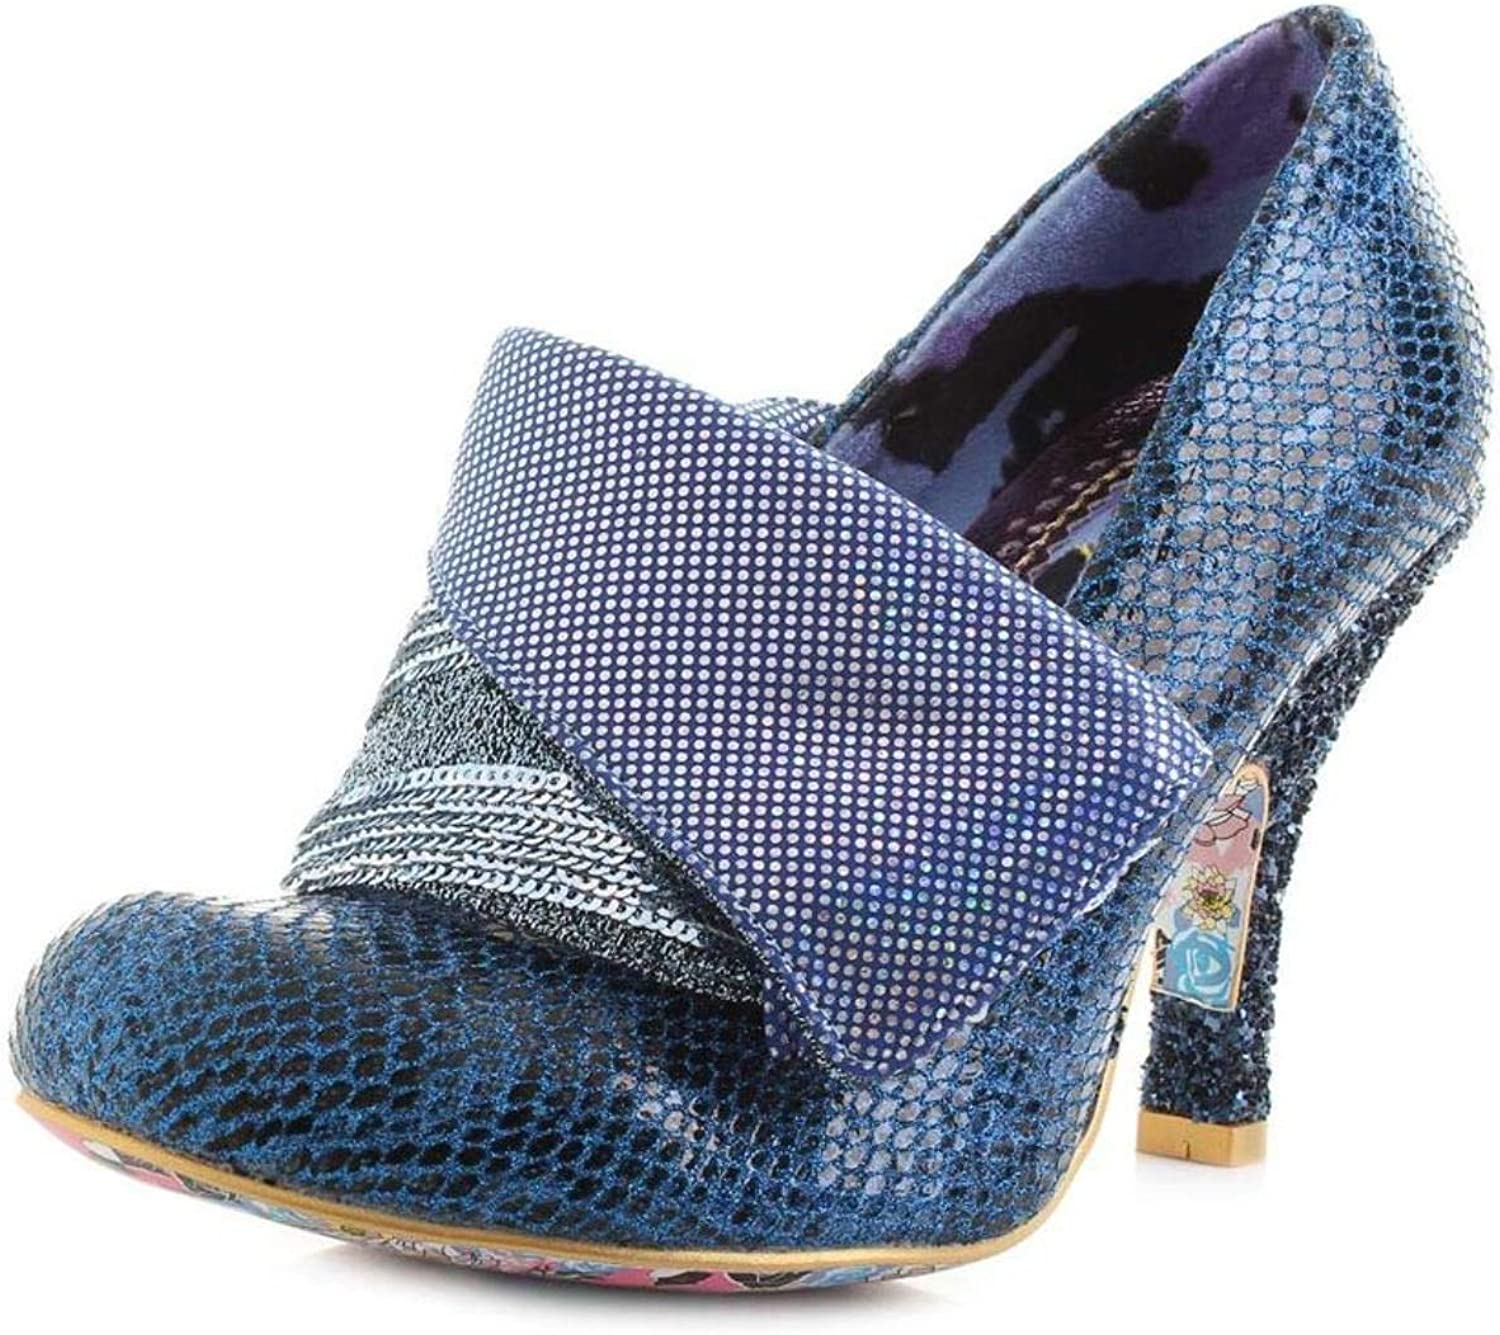 Irregular Choice Flick Flack Blau Multi Damen Closed Toe Heels Schuhe